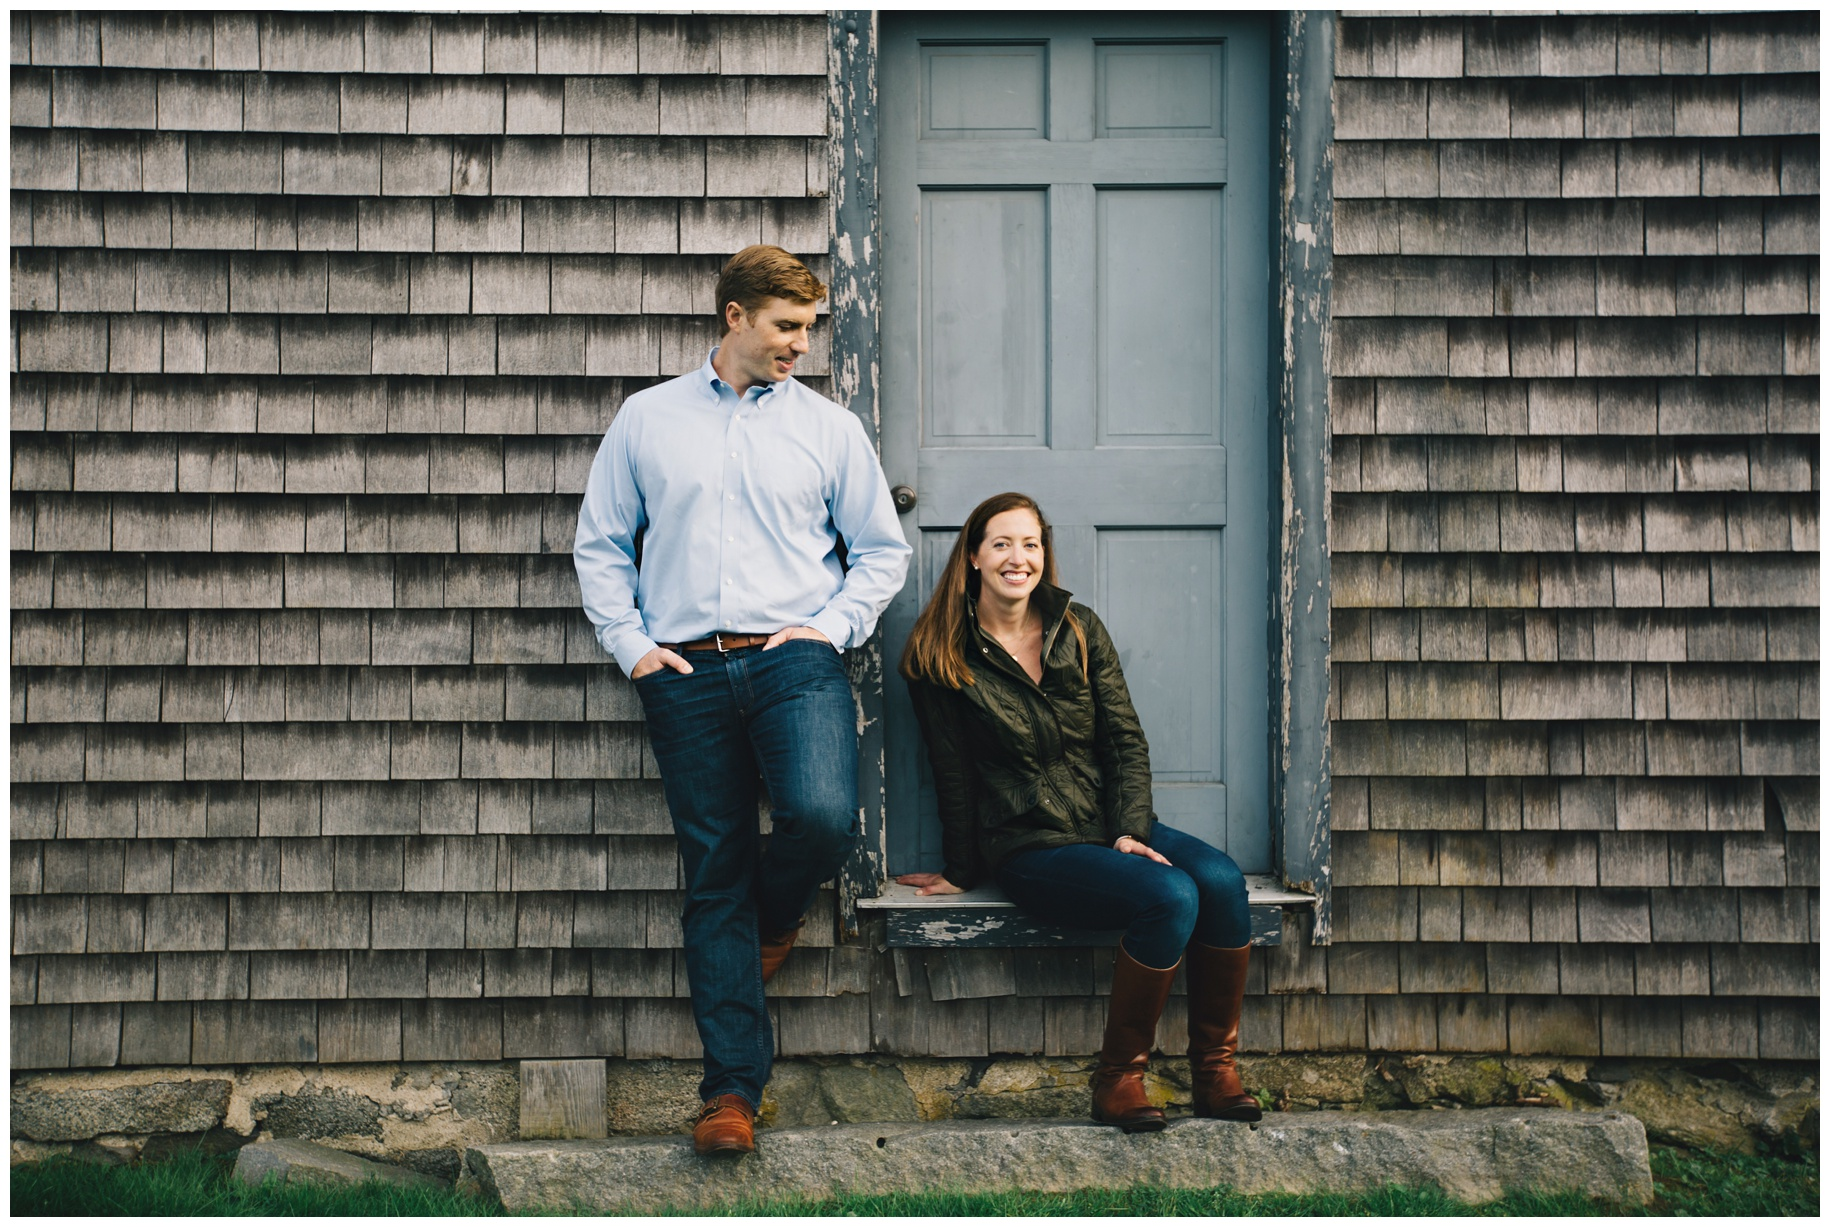 maineweddingphotographer_portsmouth_engagements_newhampshire_newengland-017